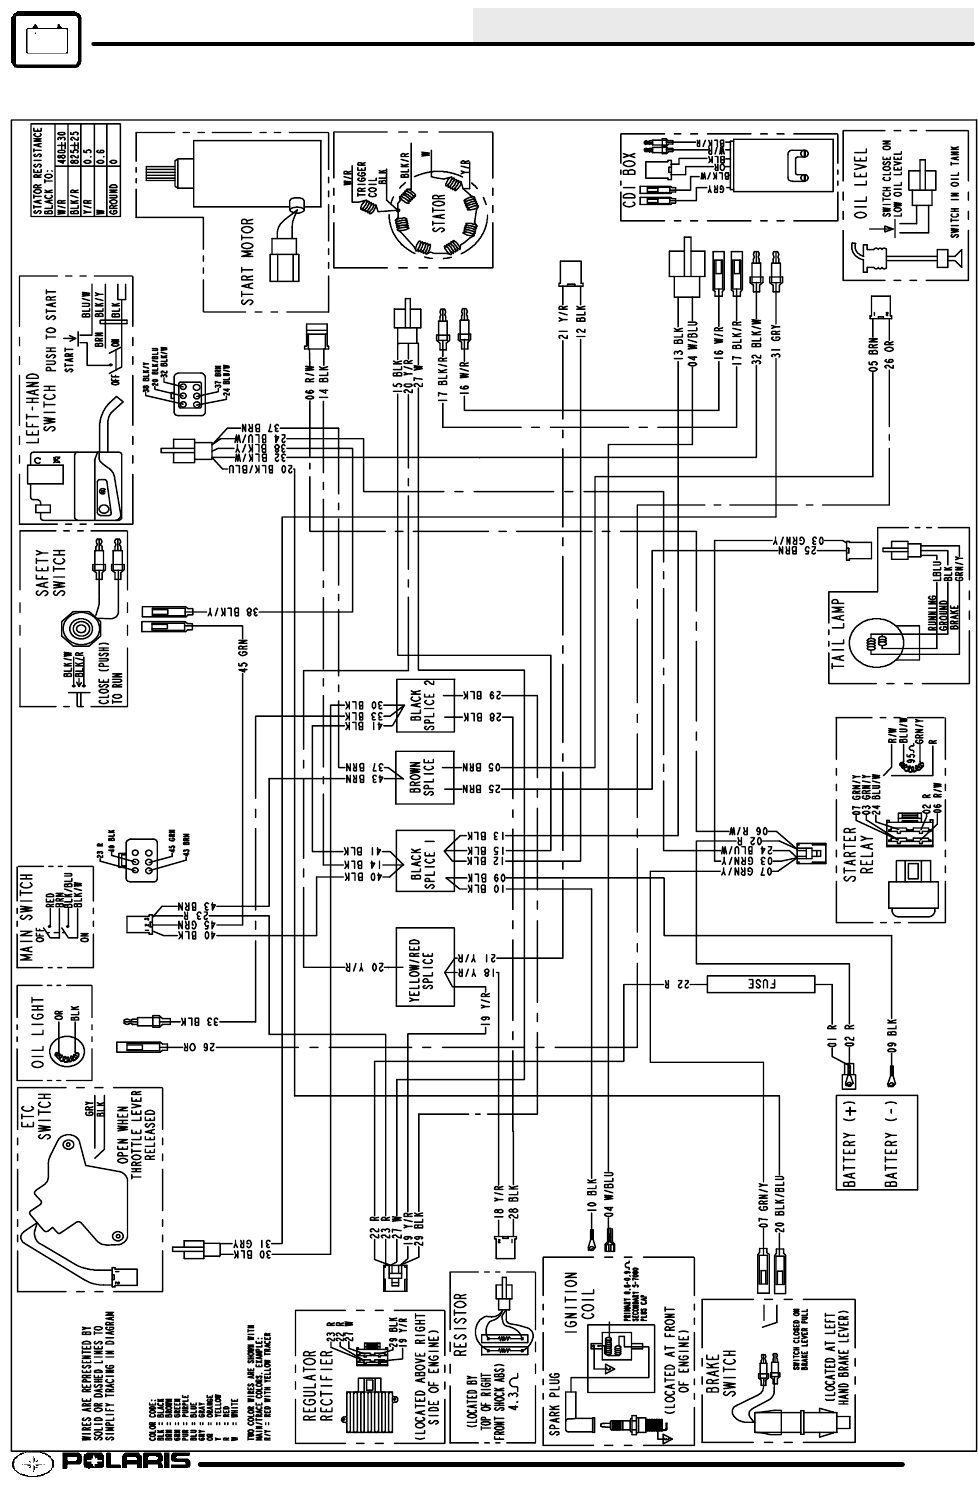 Polaris Scrambler 50cc Atv Wiring Diagram